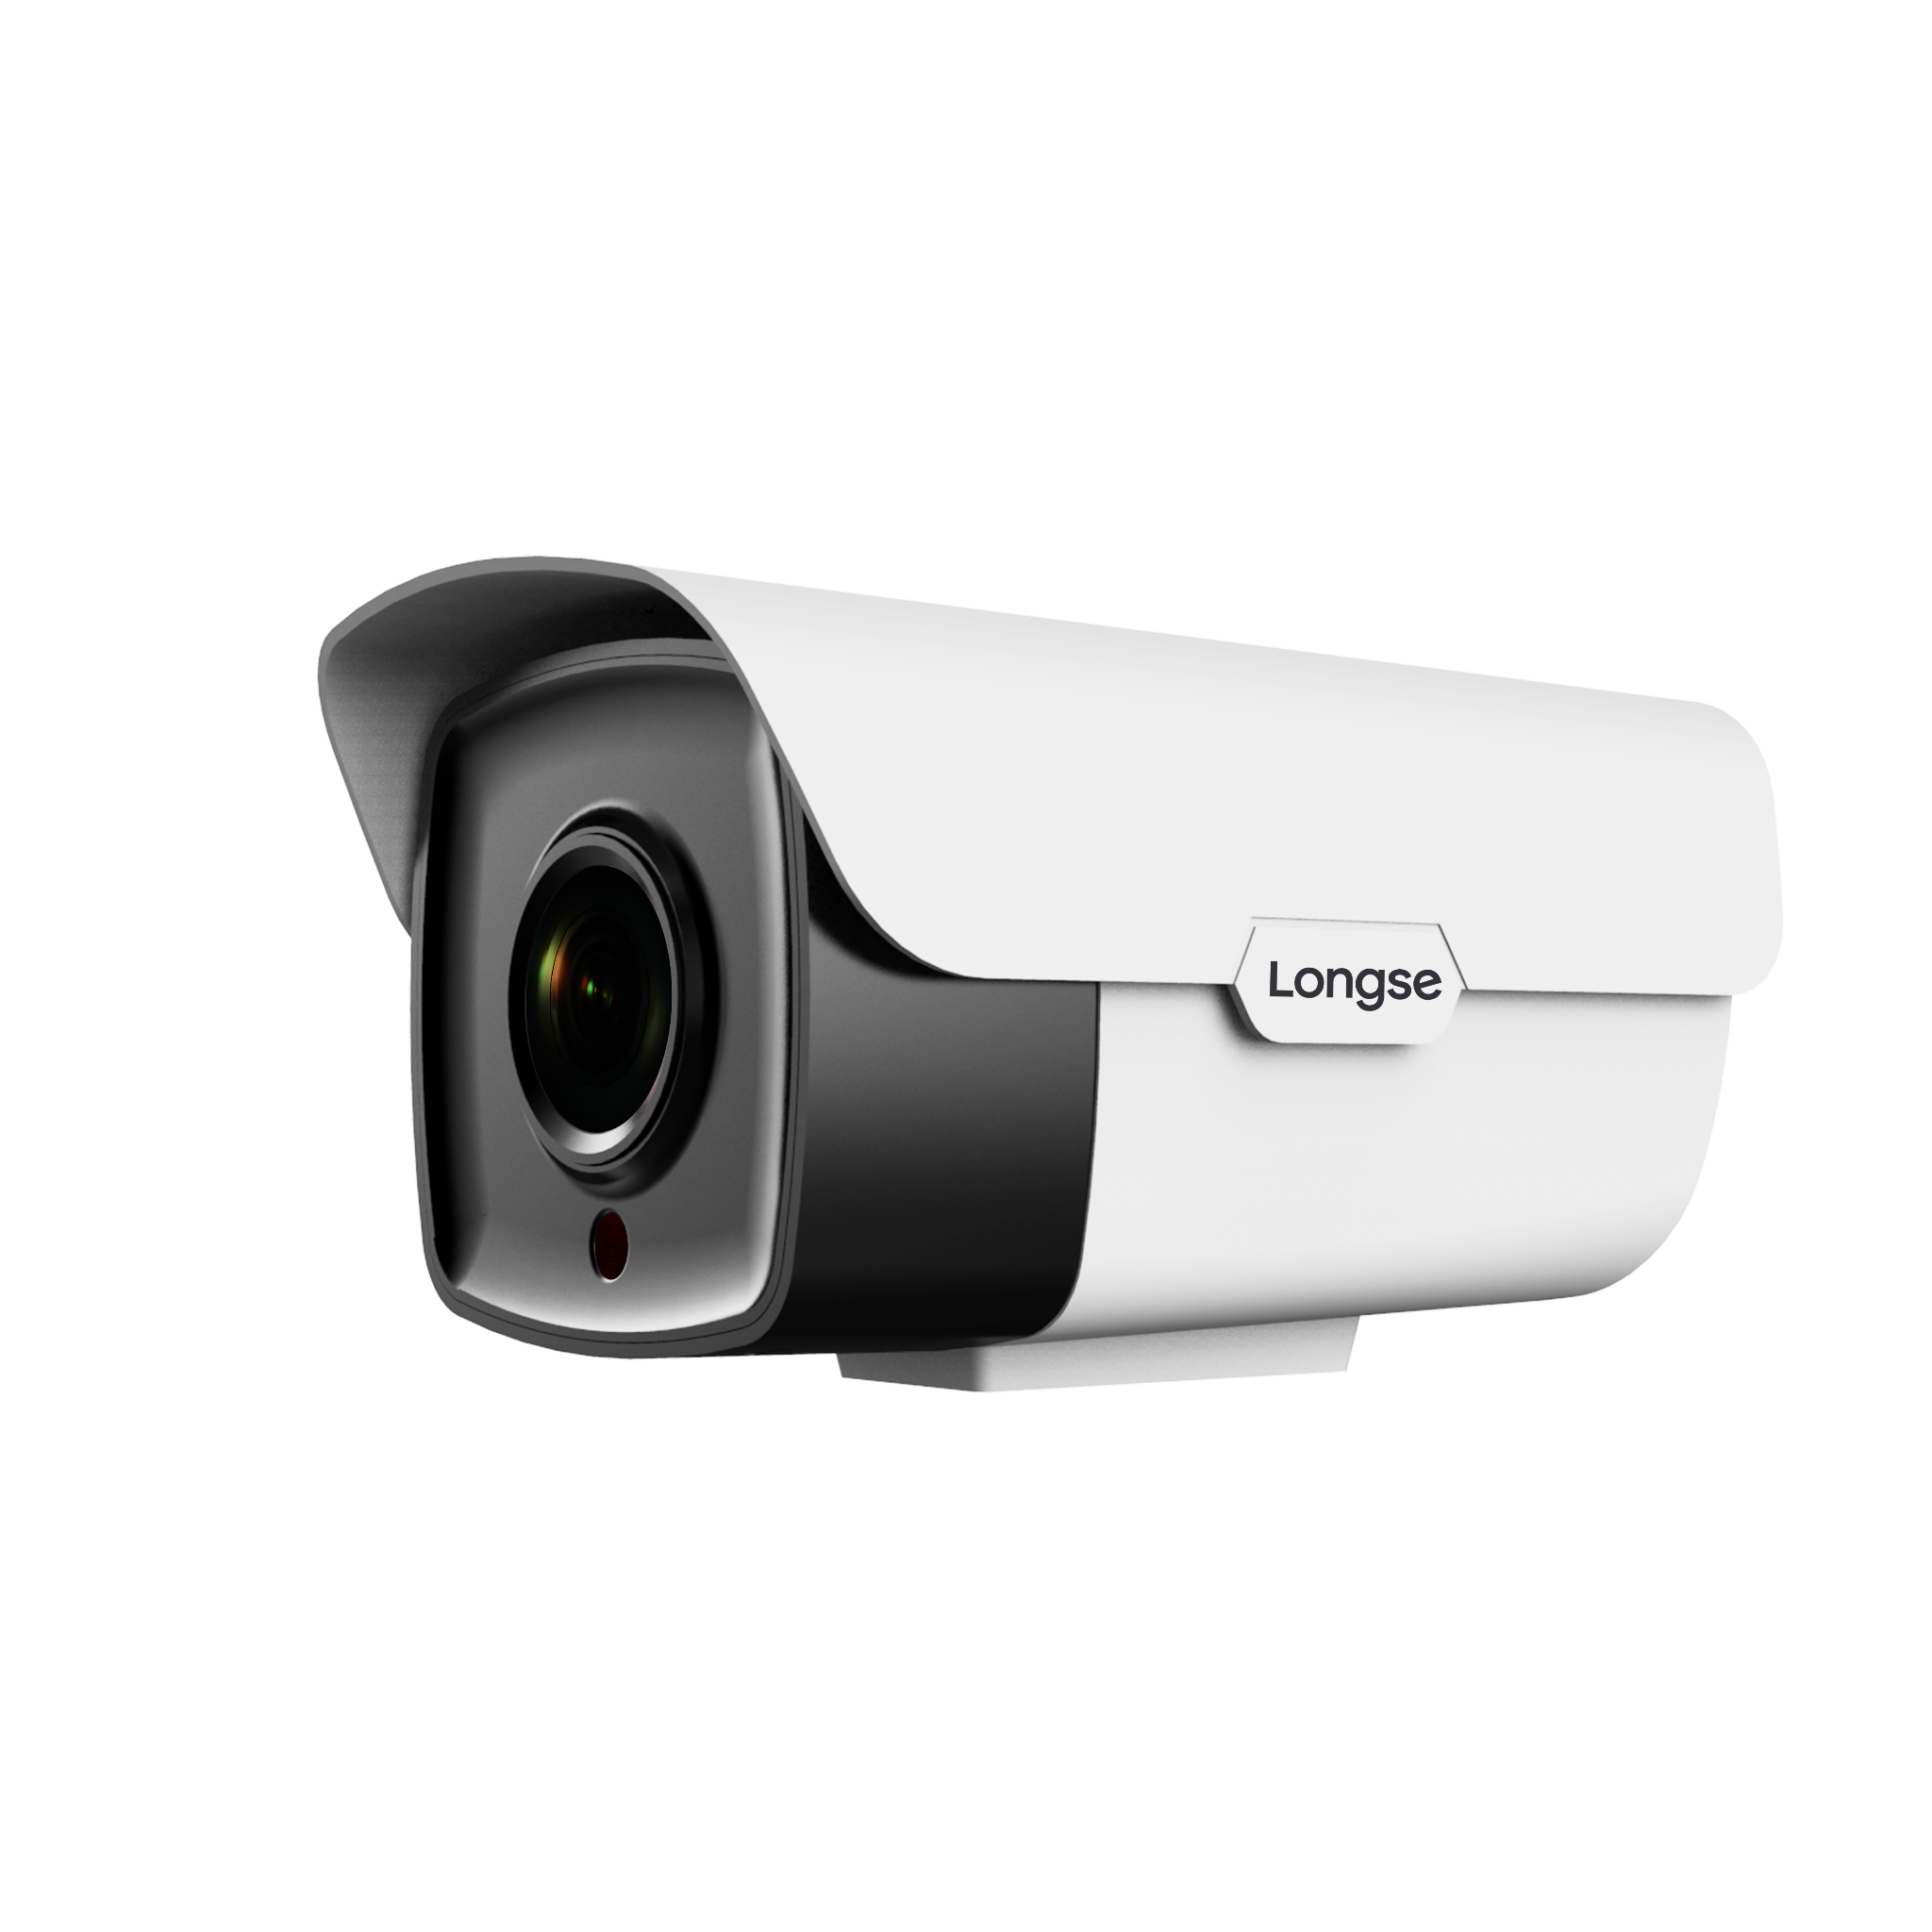 LONGSE HD IP BULLET CAMERA - LBW90SL200